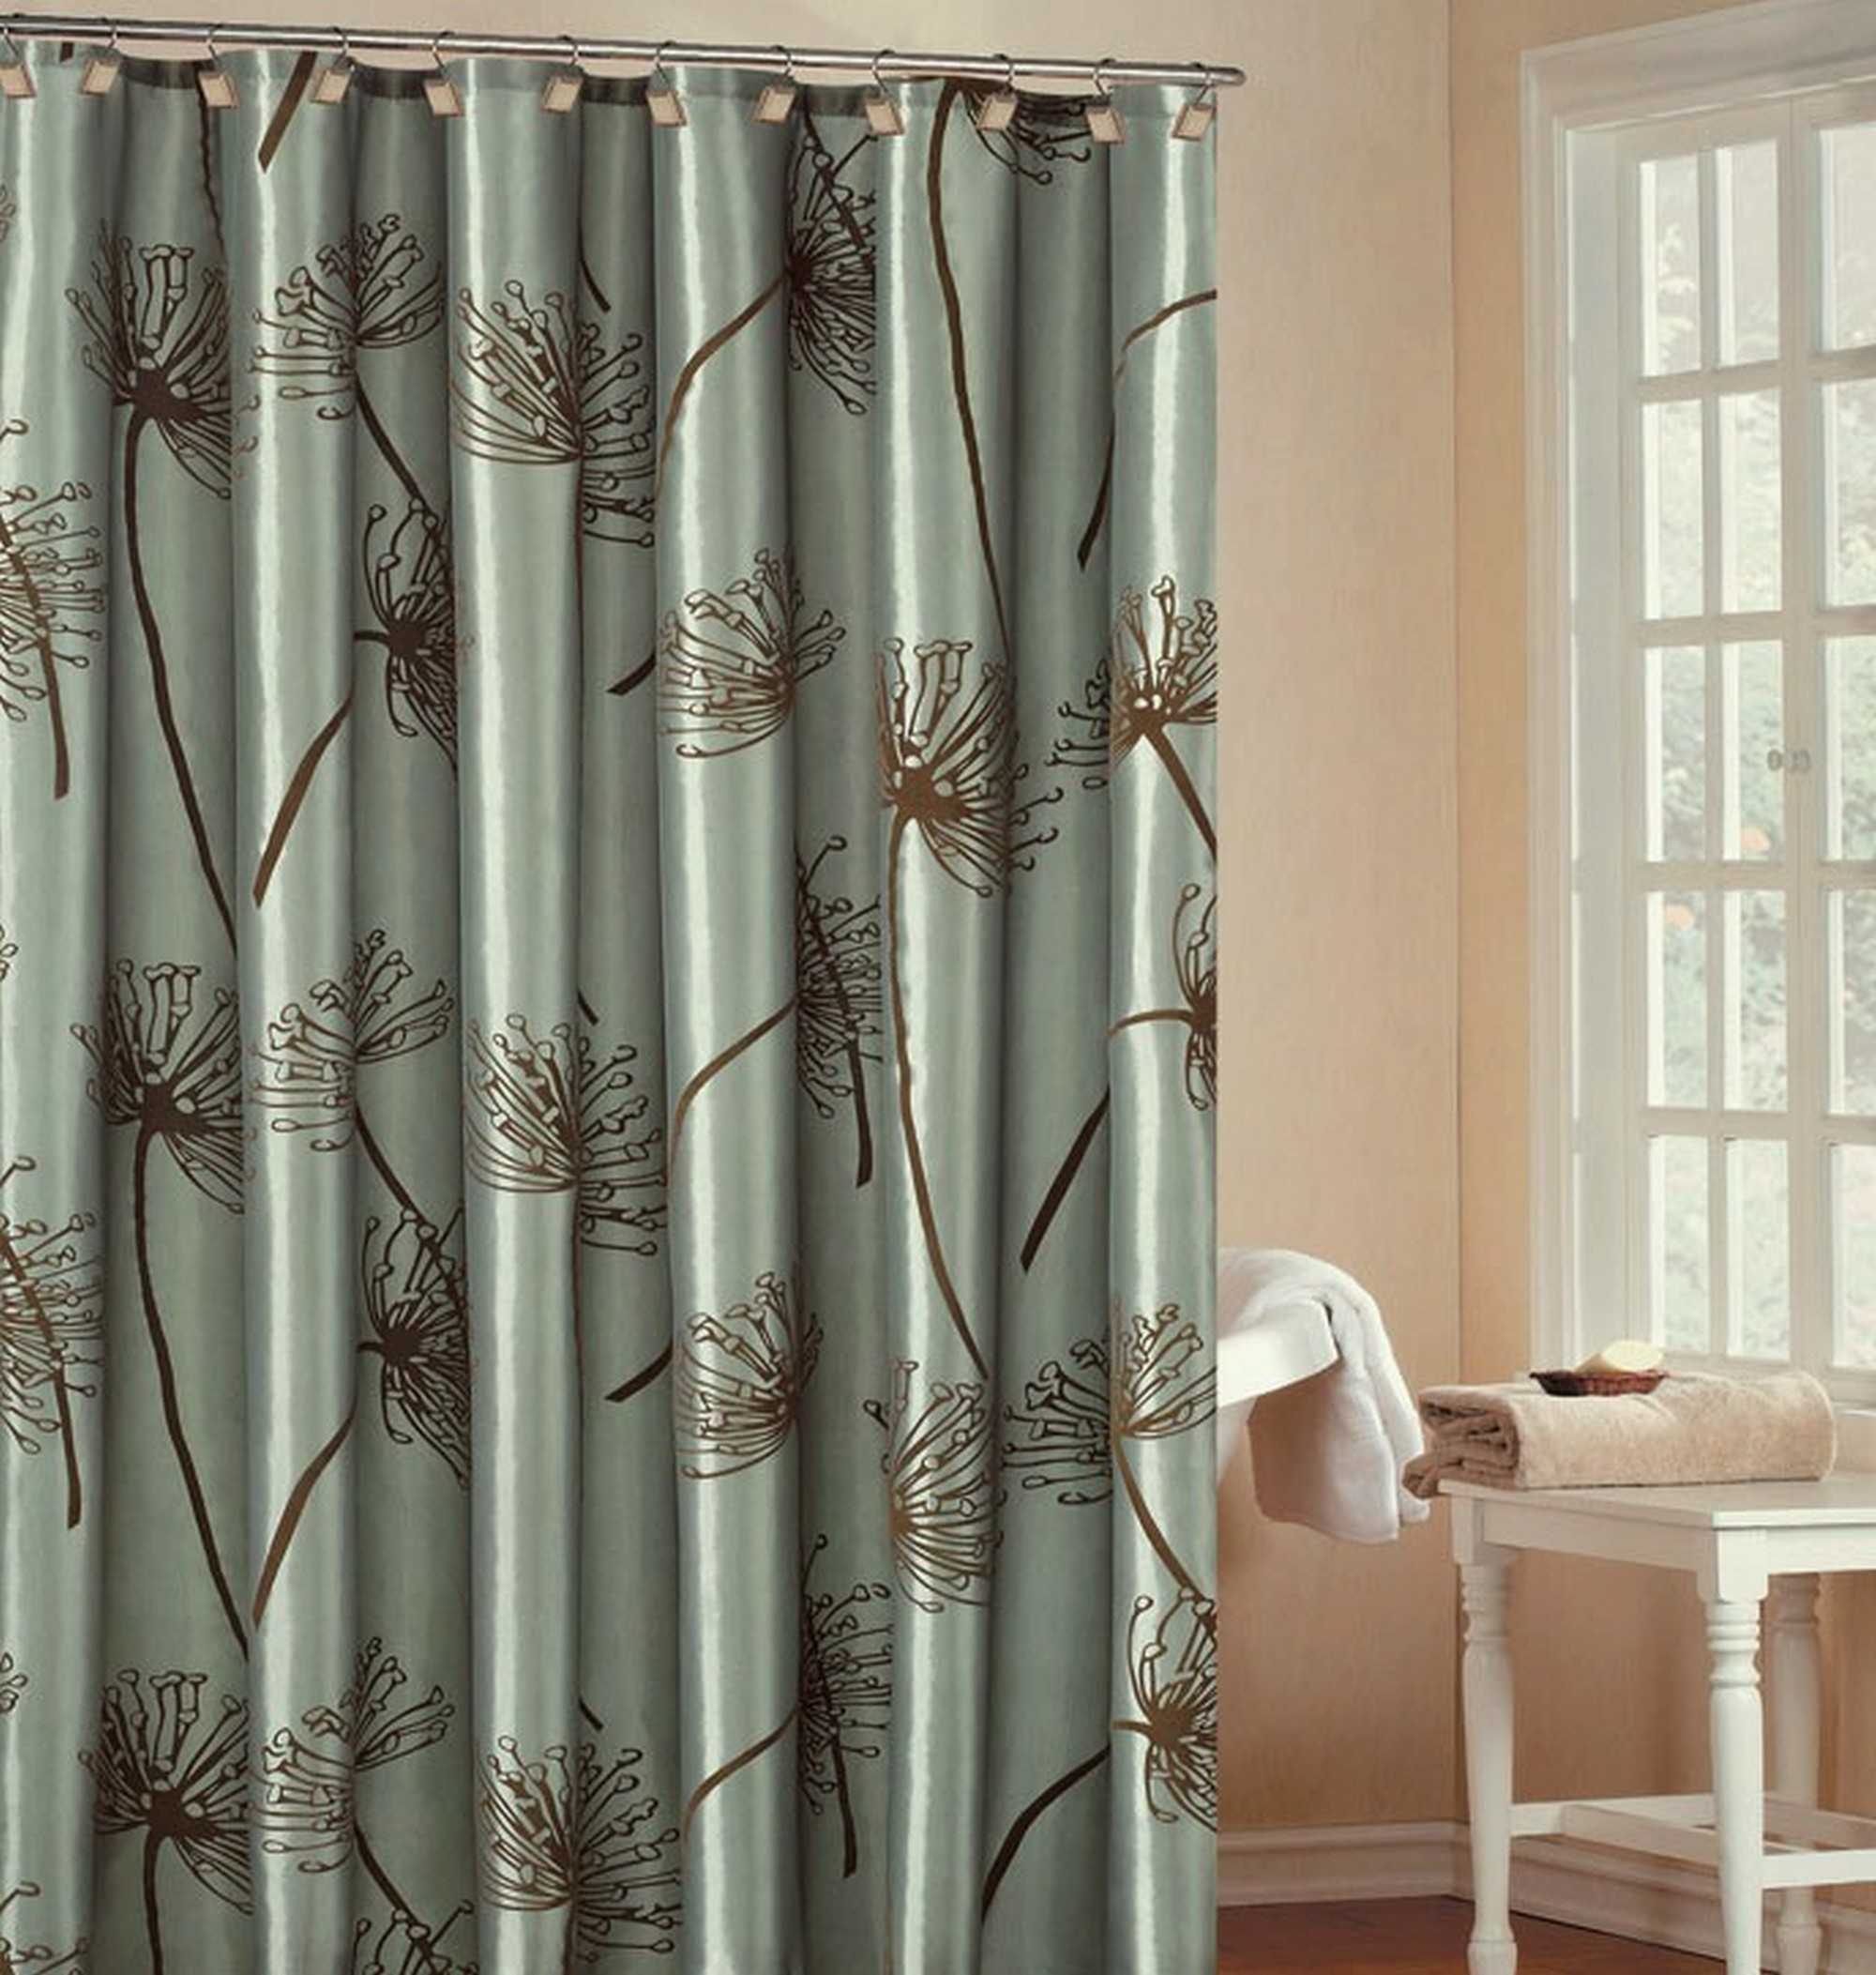 Prepossessing Luxurious Shower Curtains With Valance Interior Home for proportions 2000 X 2105